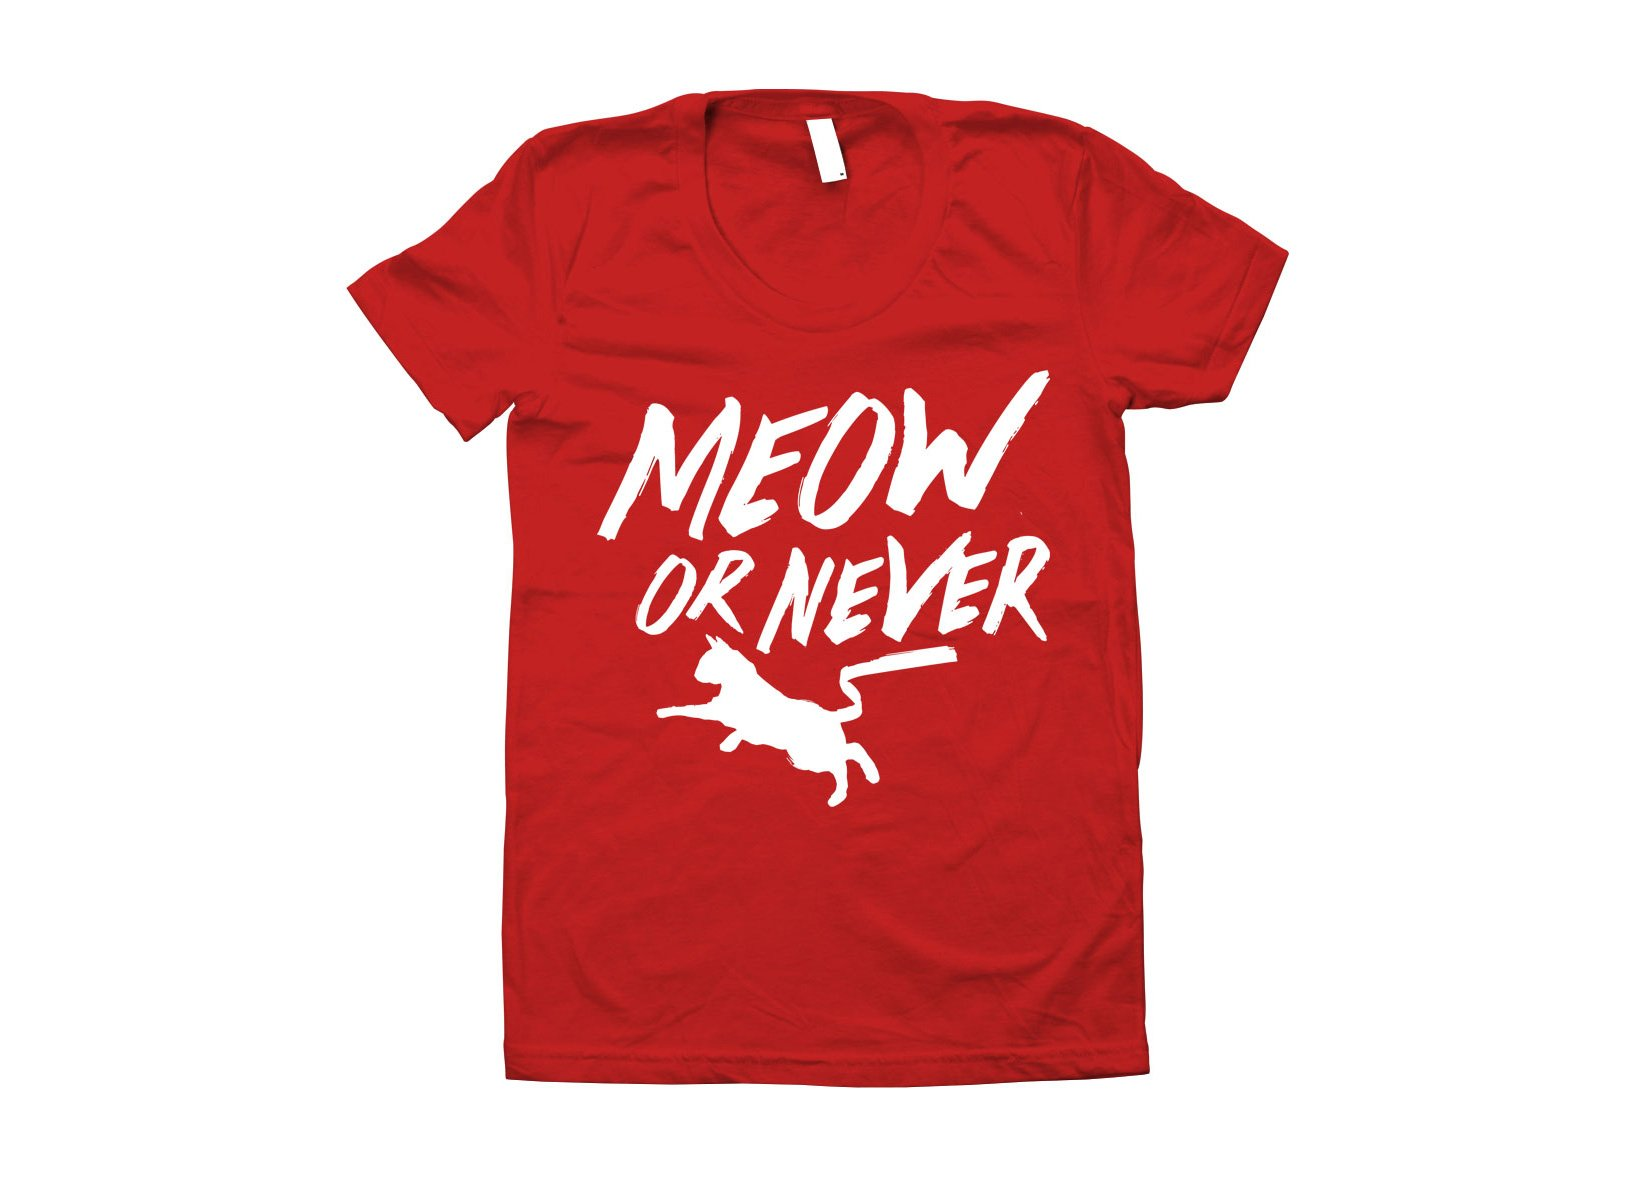 Meow Or Never on Juniors T-Shirt